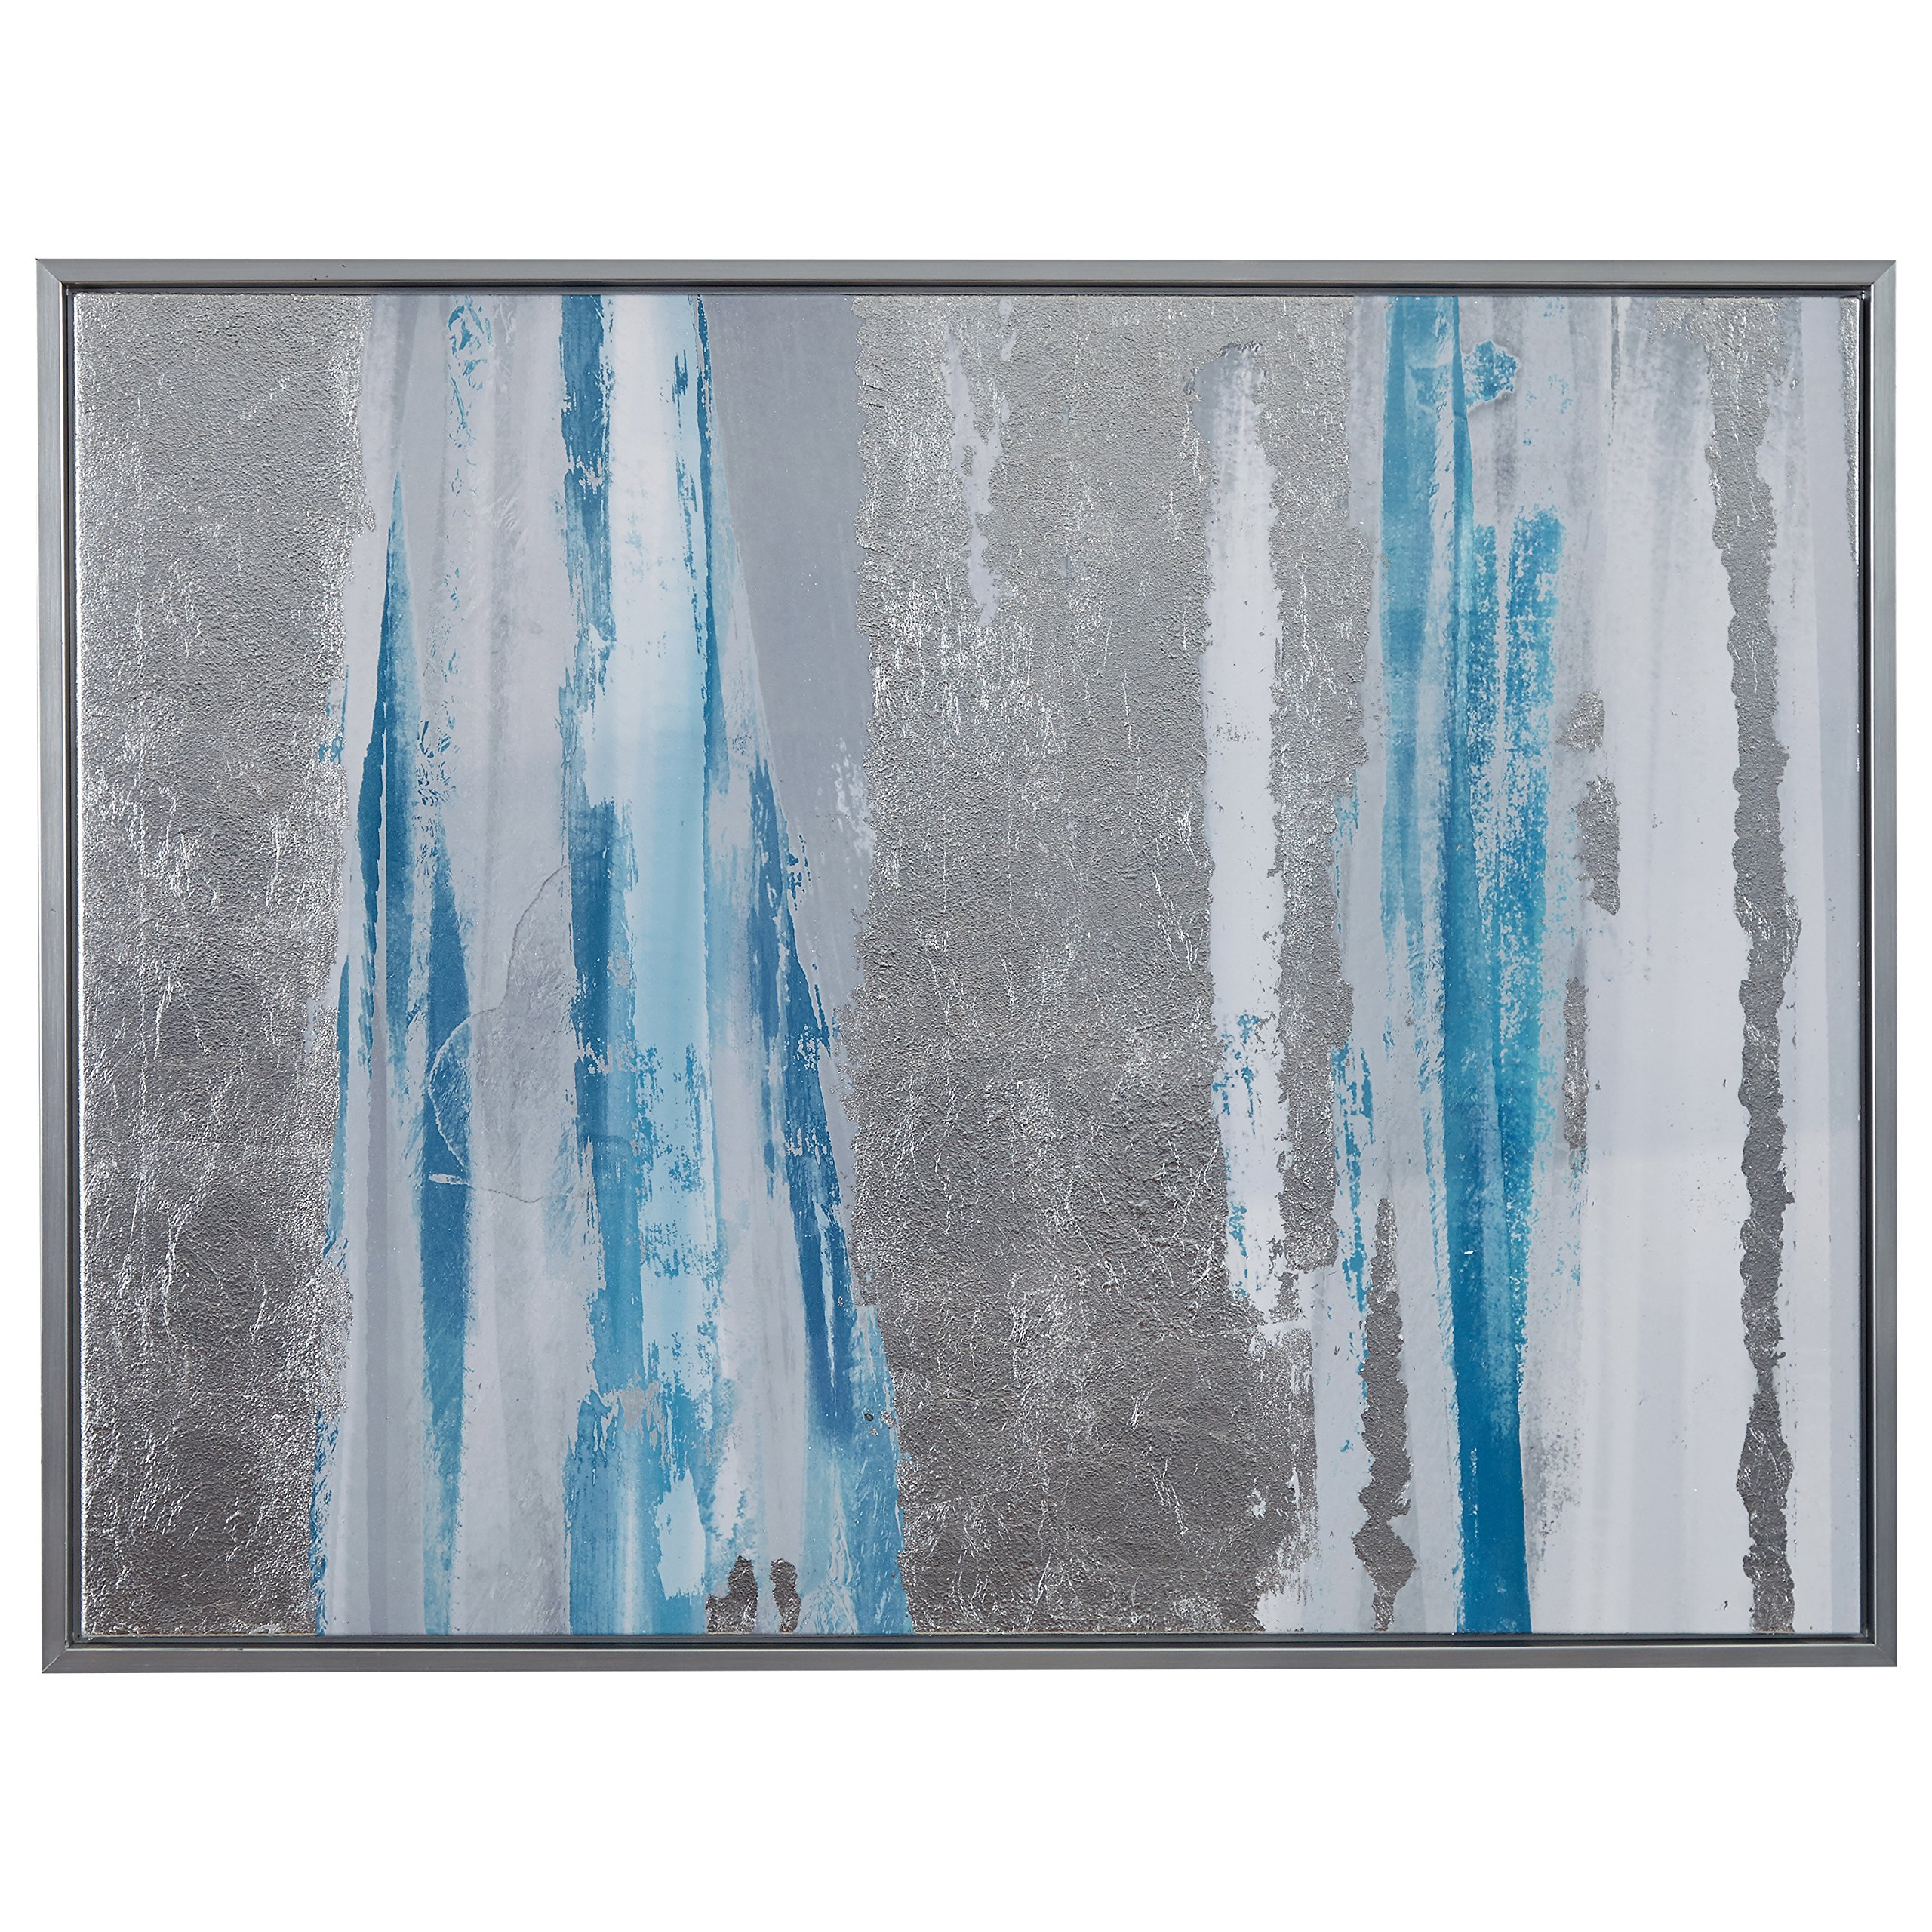 Modern Blue and Silver Abstract Print, Silver Frame 41.75'' x 31.75'' by Stone & Beam